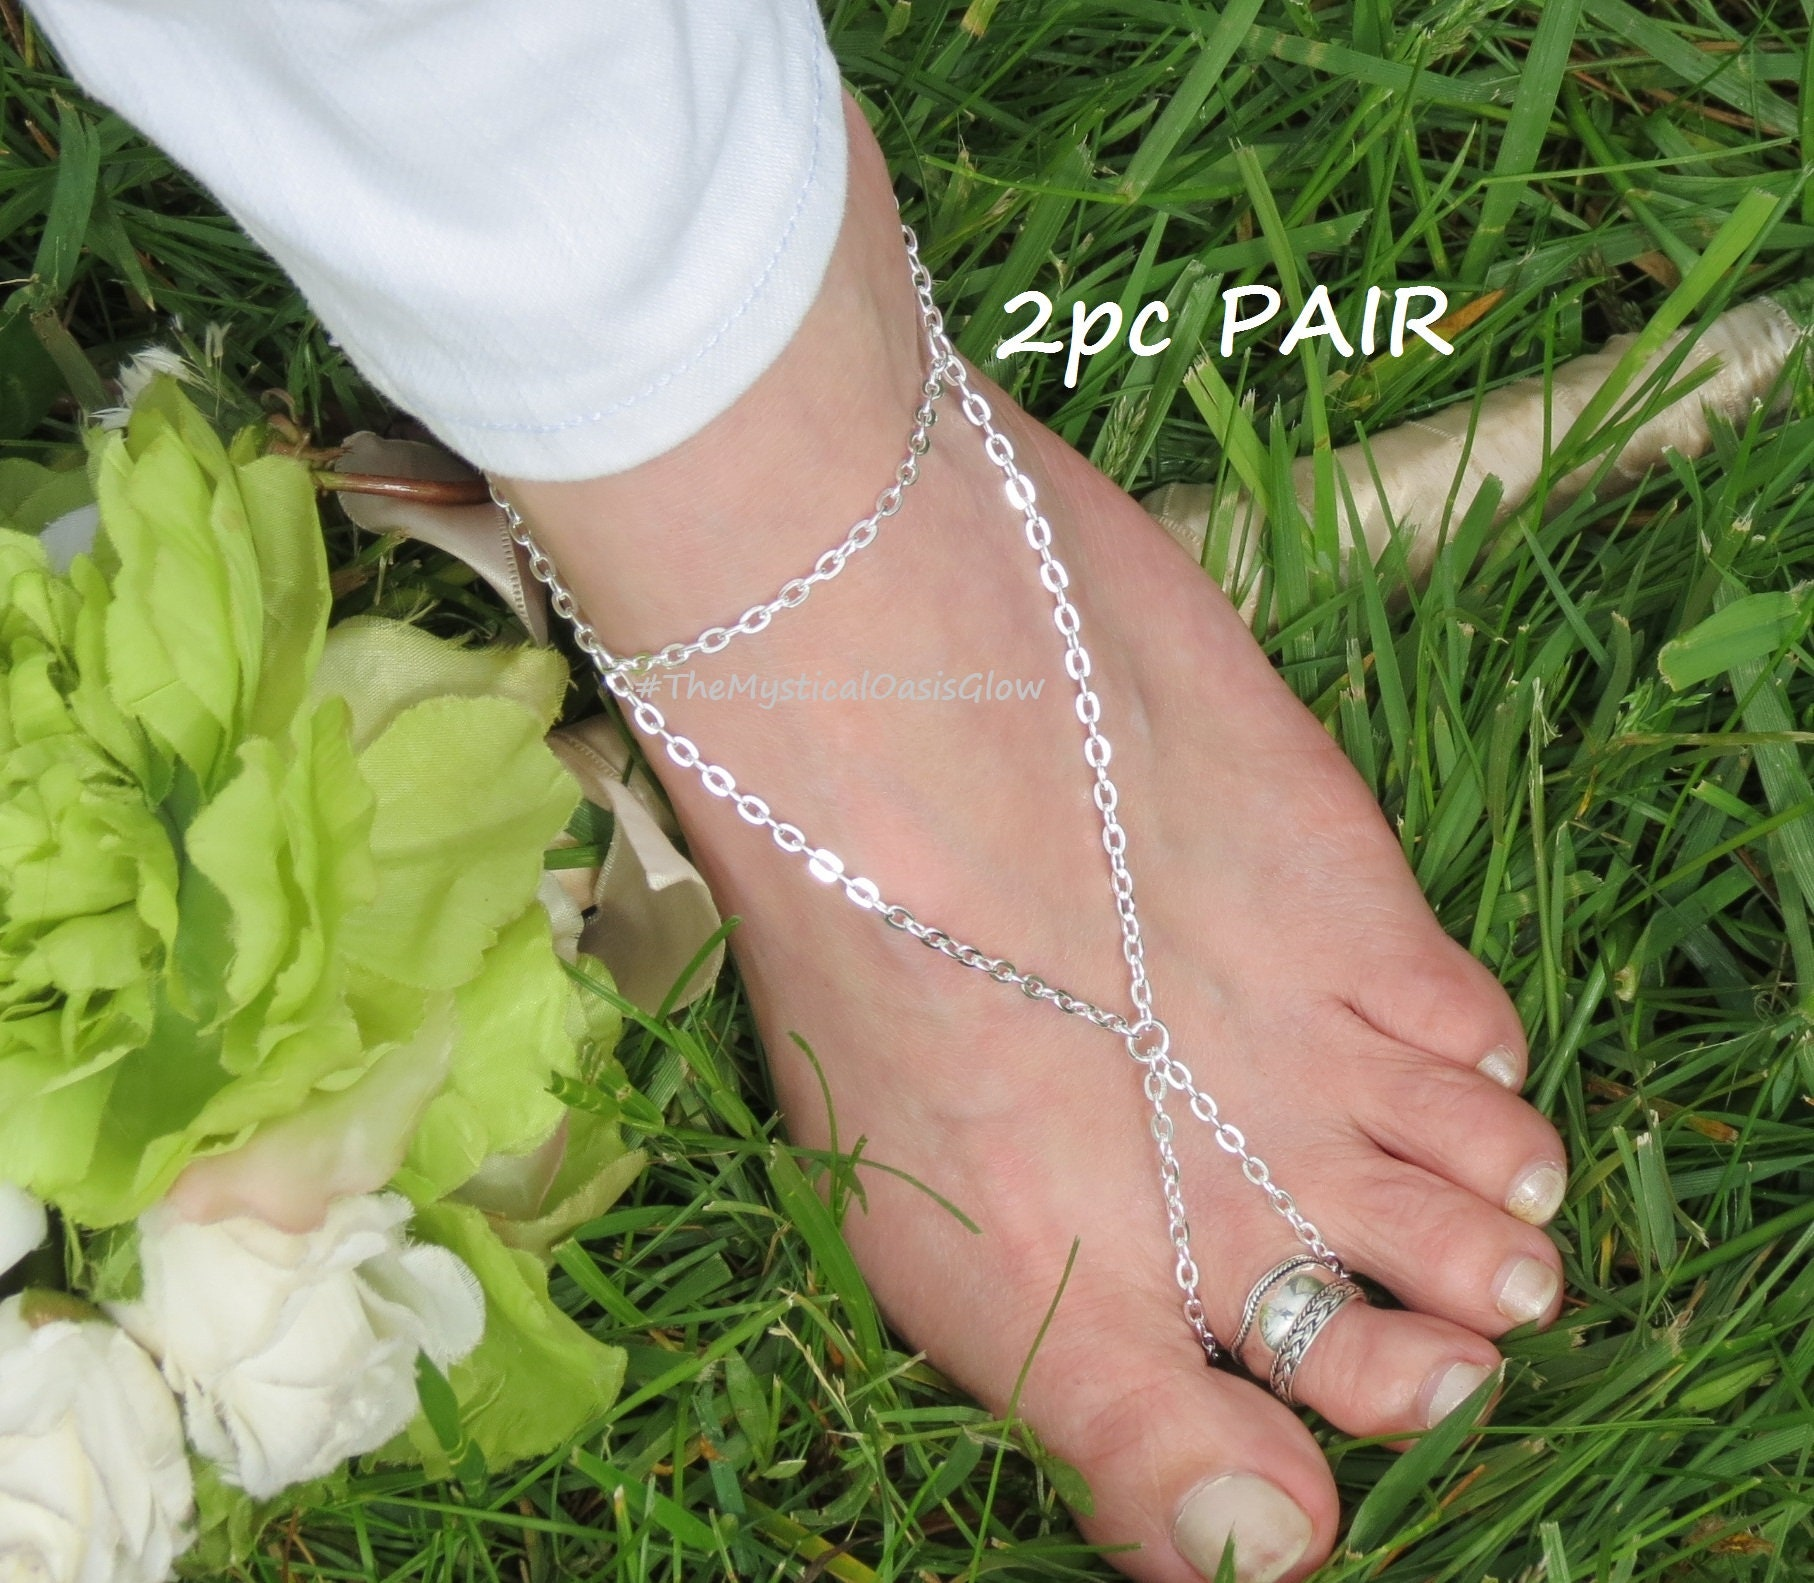 891e09717215b Silver Triangle barefoot sandals for women, beach wedding sandals foot  jewelry slave anklets, toe ring to anklet Gold Bronze Stainless Steel